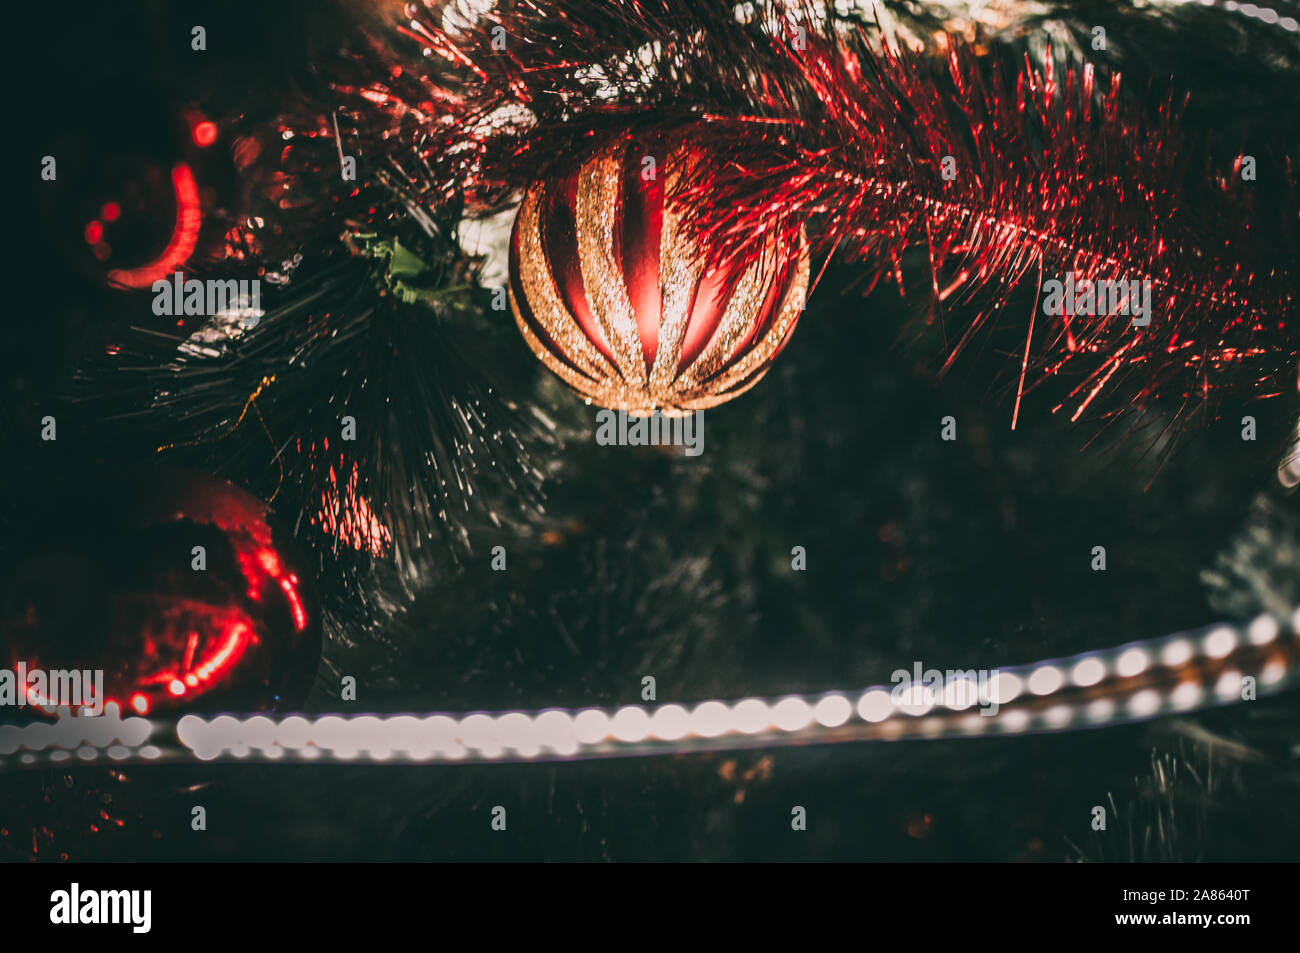 Decorated Christmas Tree Close Up Red Balls And A Garland With Illumination With Lanterns New Year S Baubles Macro Photo With Bokeh Winter Holiday Stock Photo Alamy